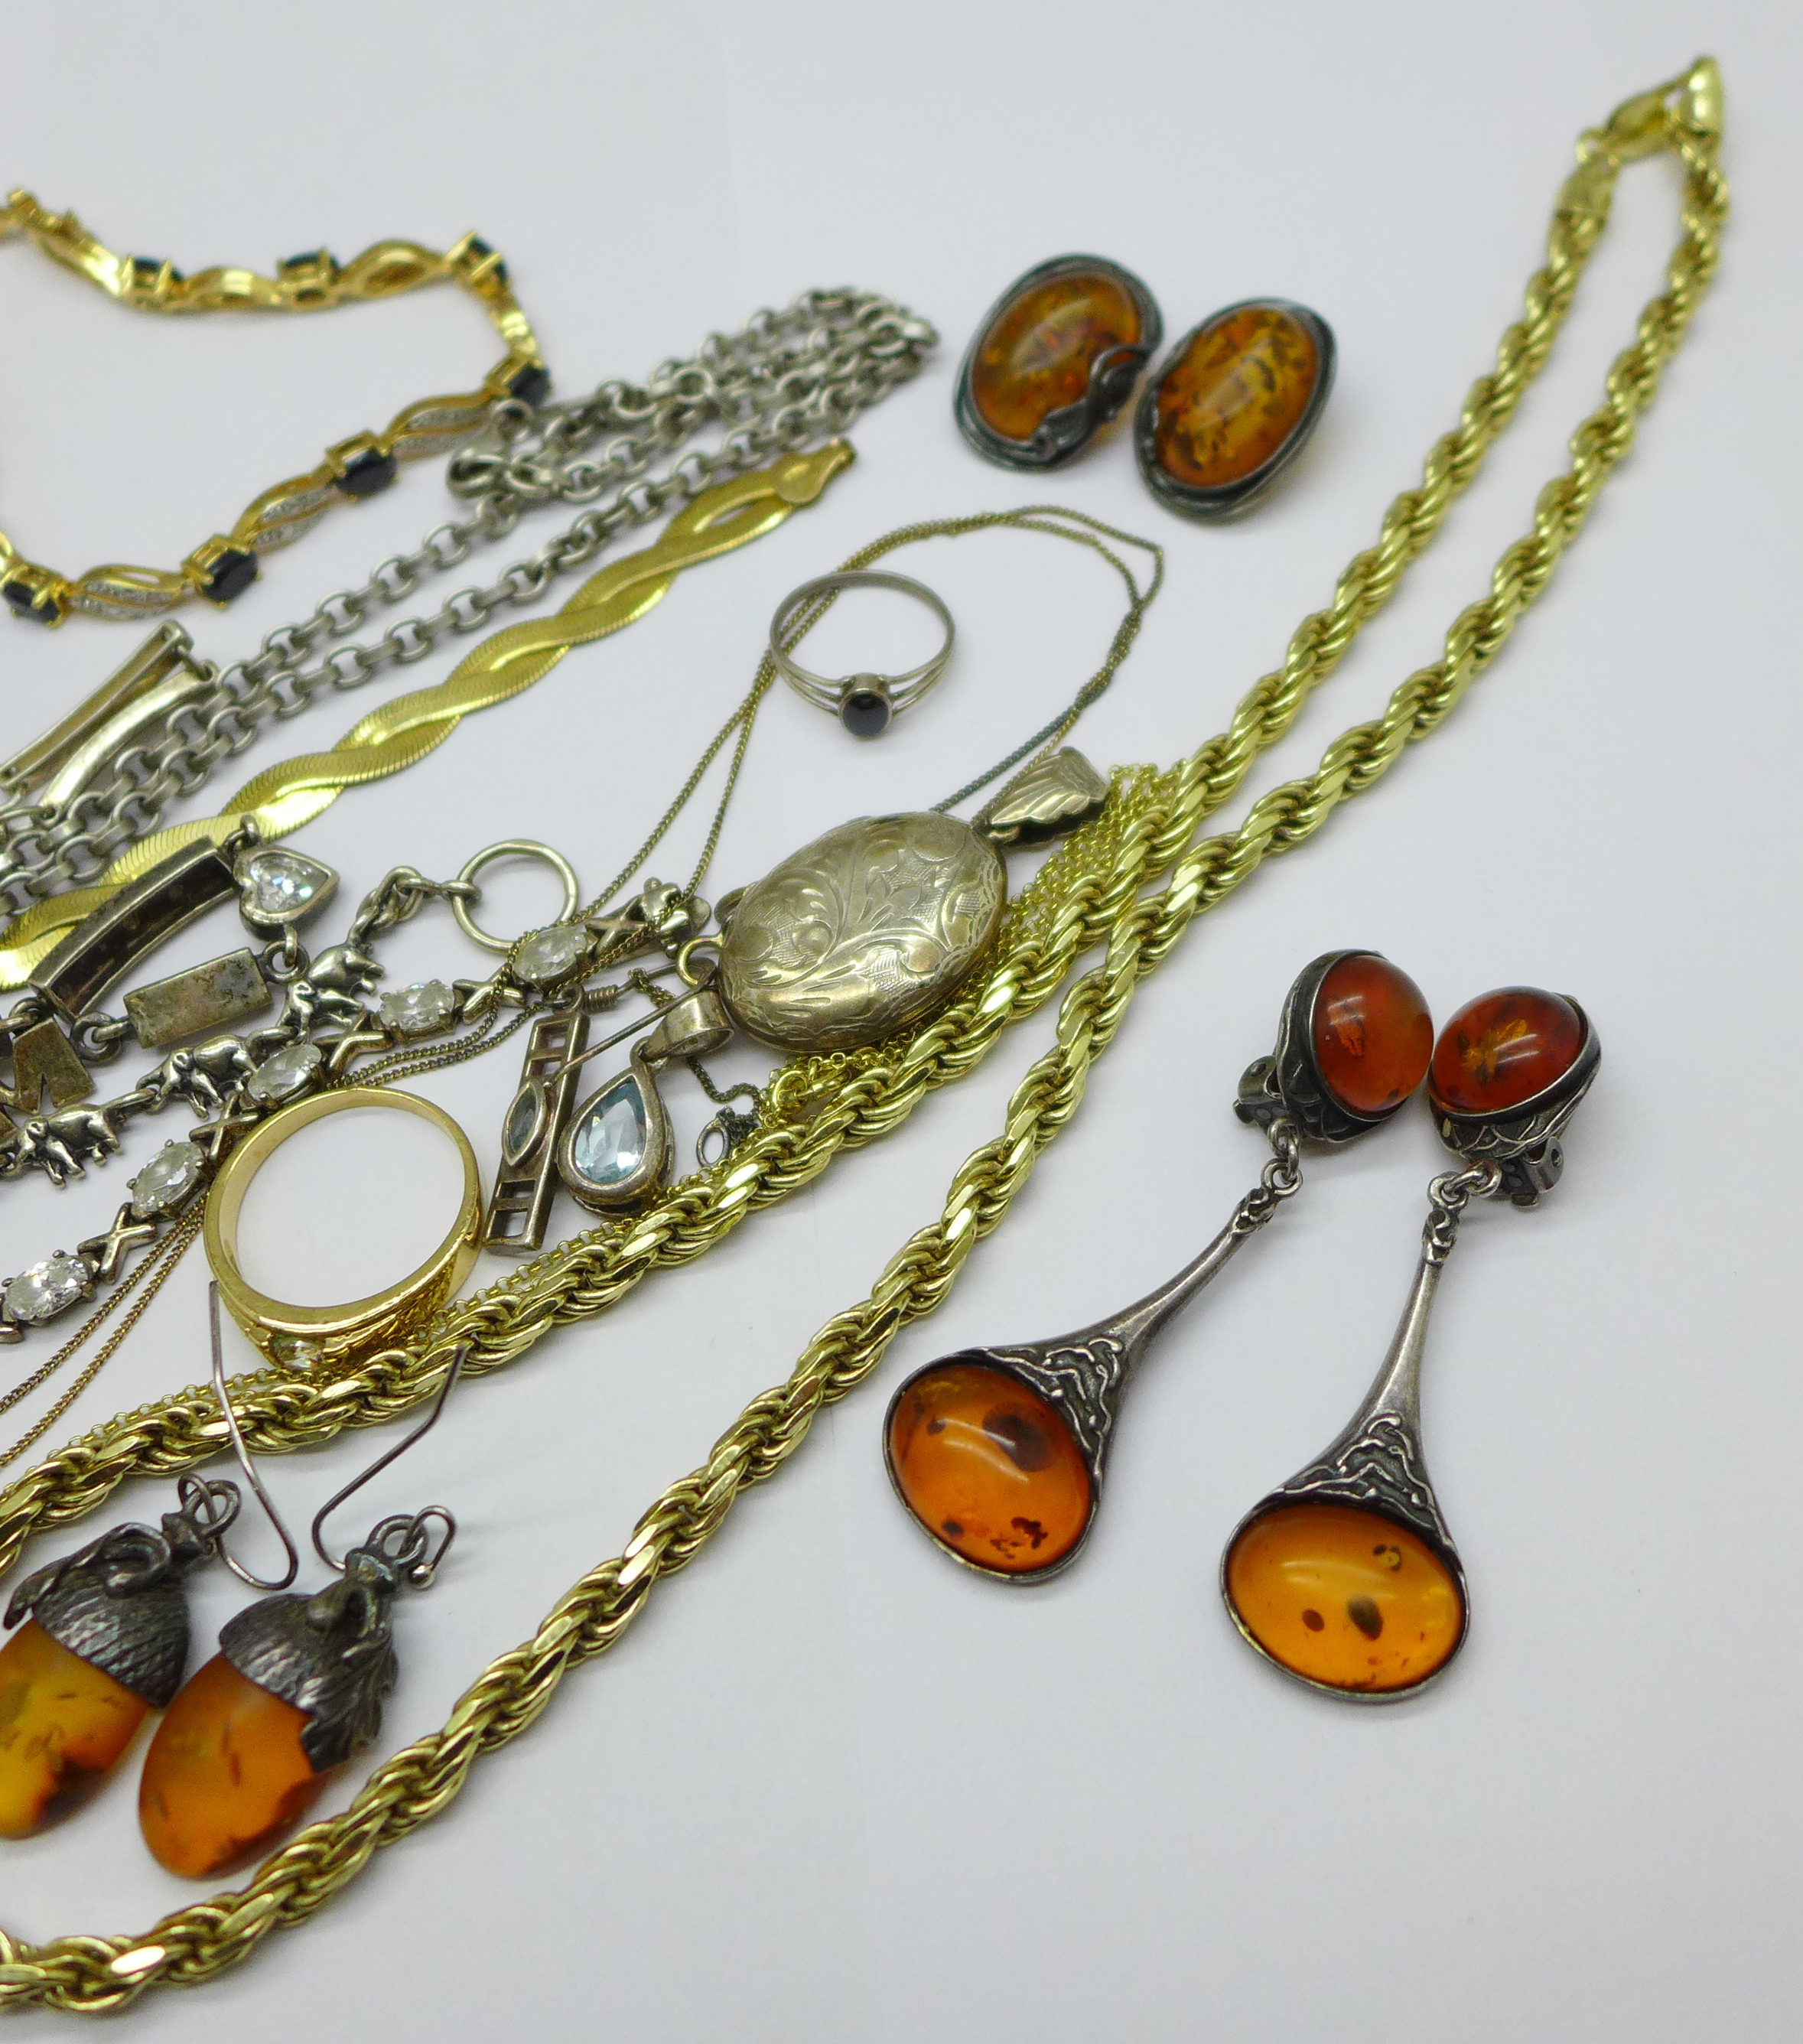 Silver jewellery including a hallmarked bangle, an elephant bracelet and a Thomas Sabo neck chain, - Image 5 of 5